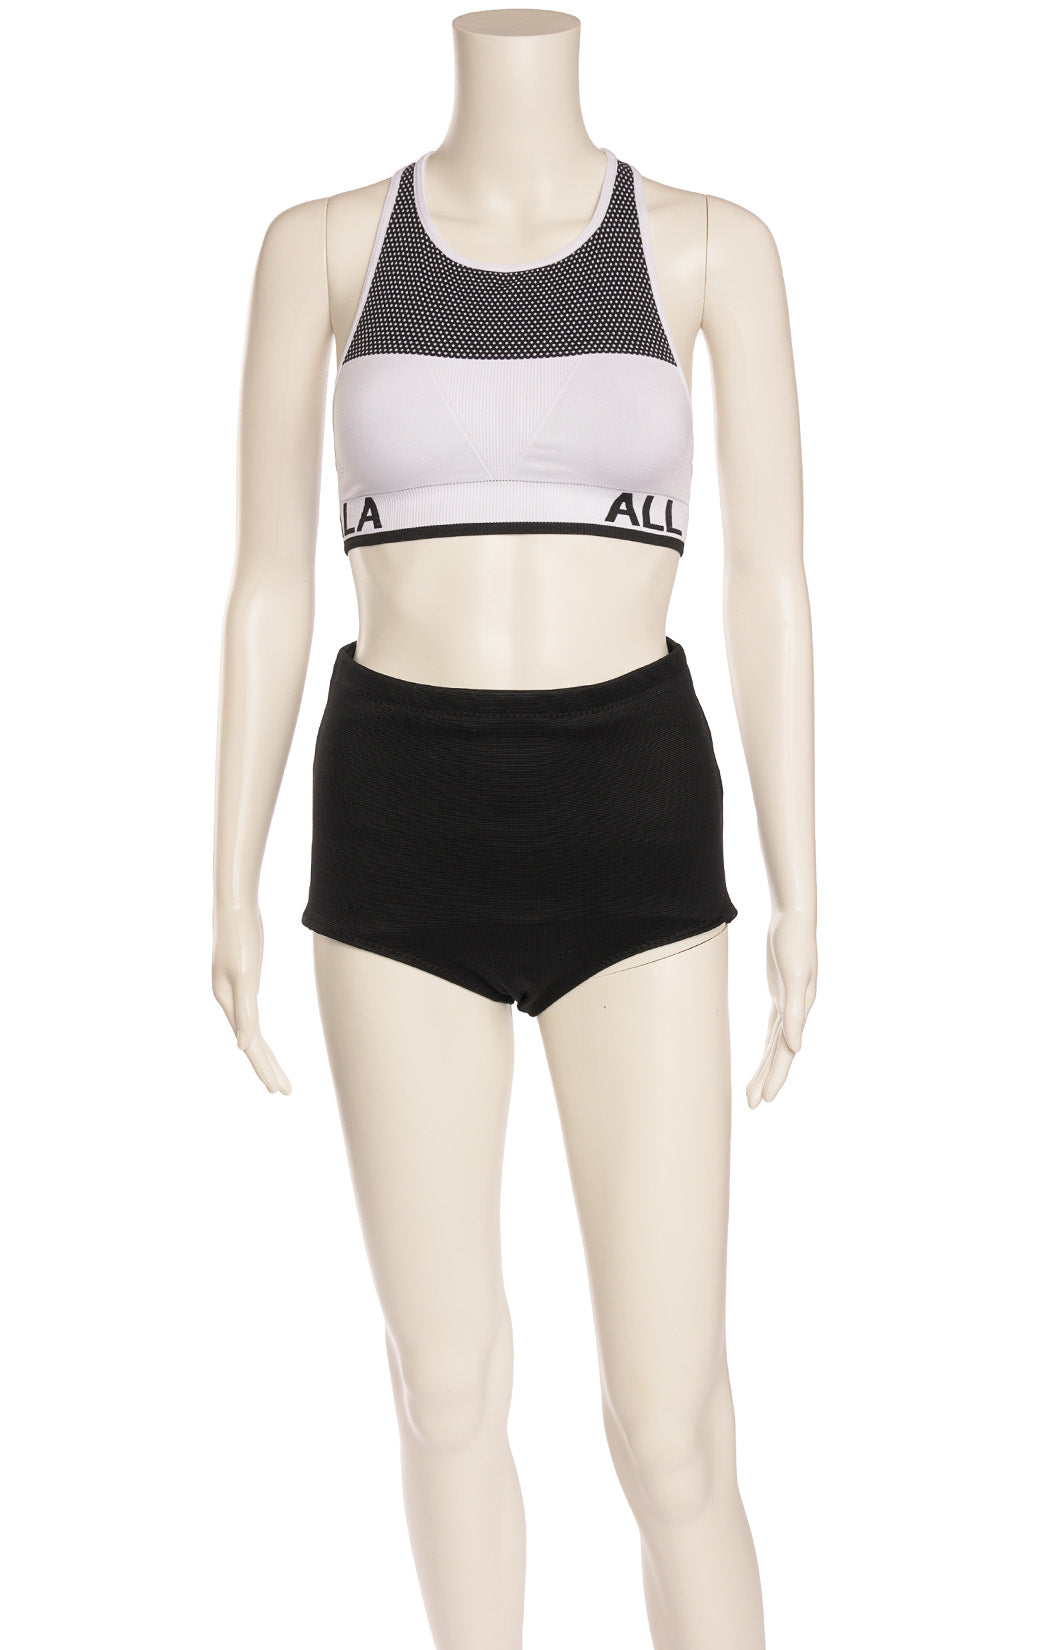 Front view of ALALA with tags Jogging bra Size: Small